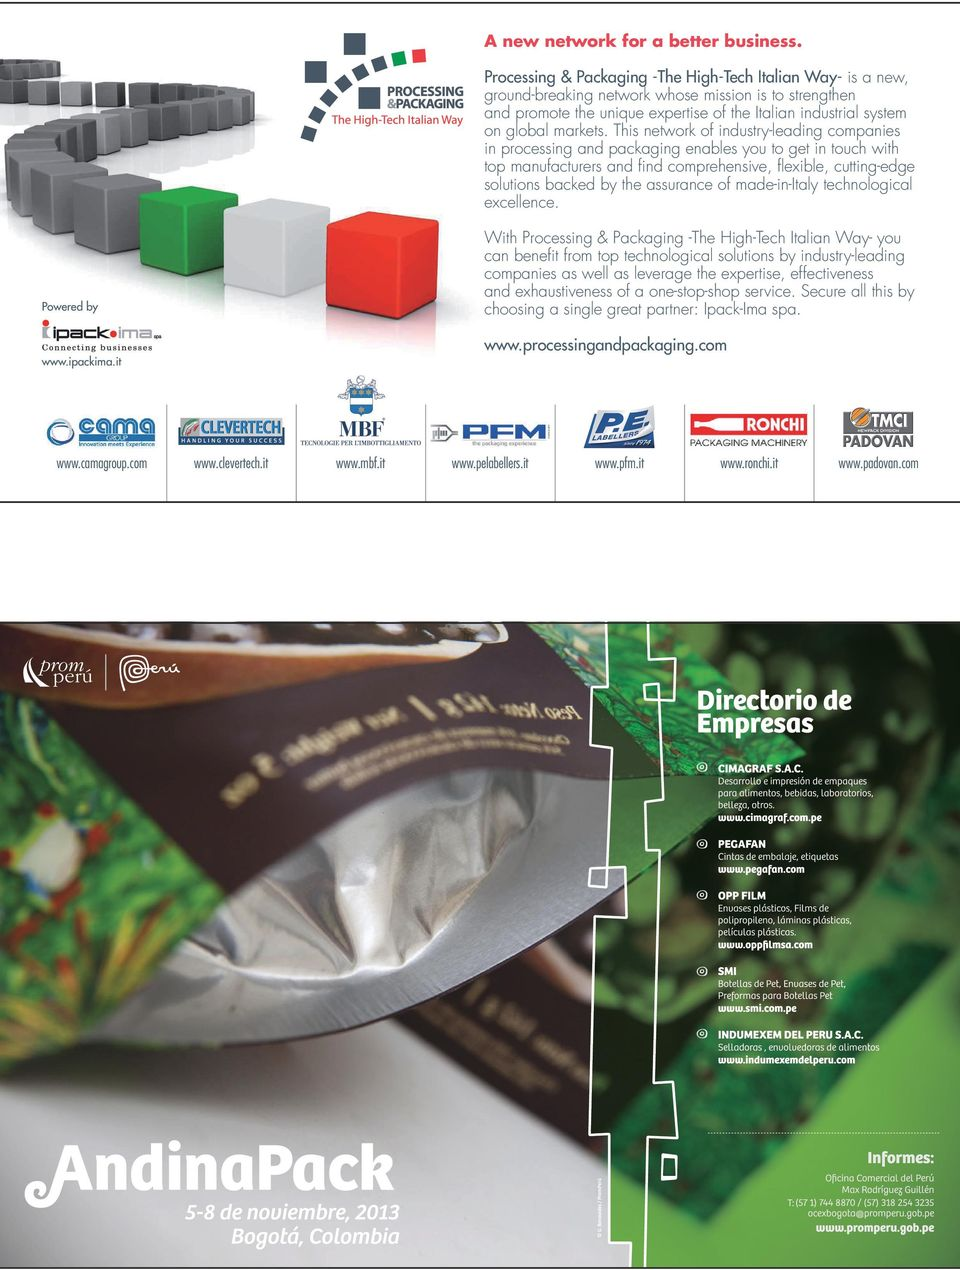 This network of industry-leading companies in processing and packaging enables you to get in touch with top manufacturers and find comprehensive, flexible, cutting-edge solutions backed by the